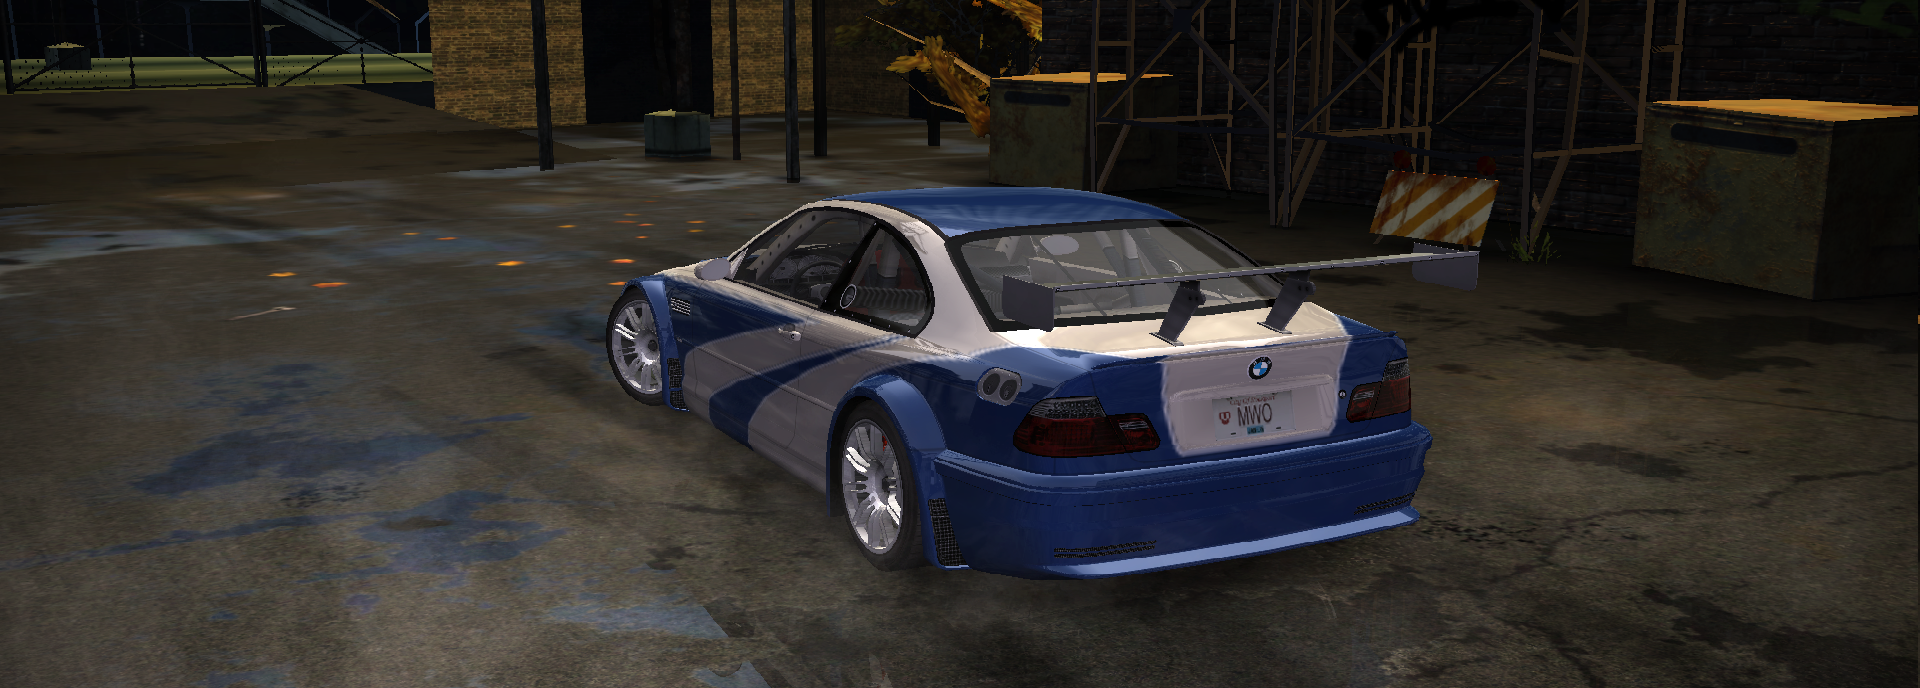 Nfsmods Carbon To Most Wanted Bmw M3 Gtr E46 Textures